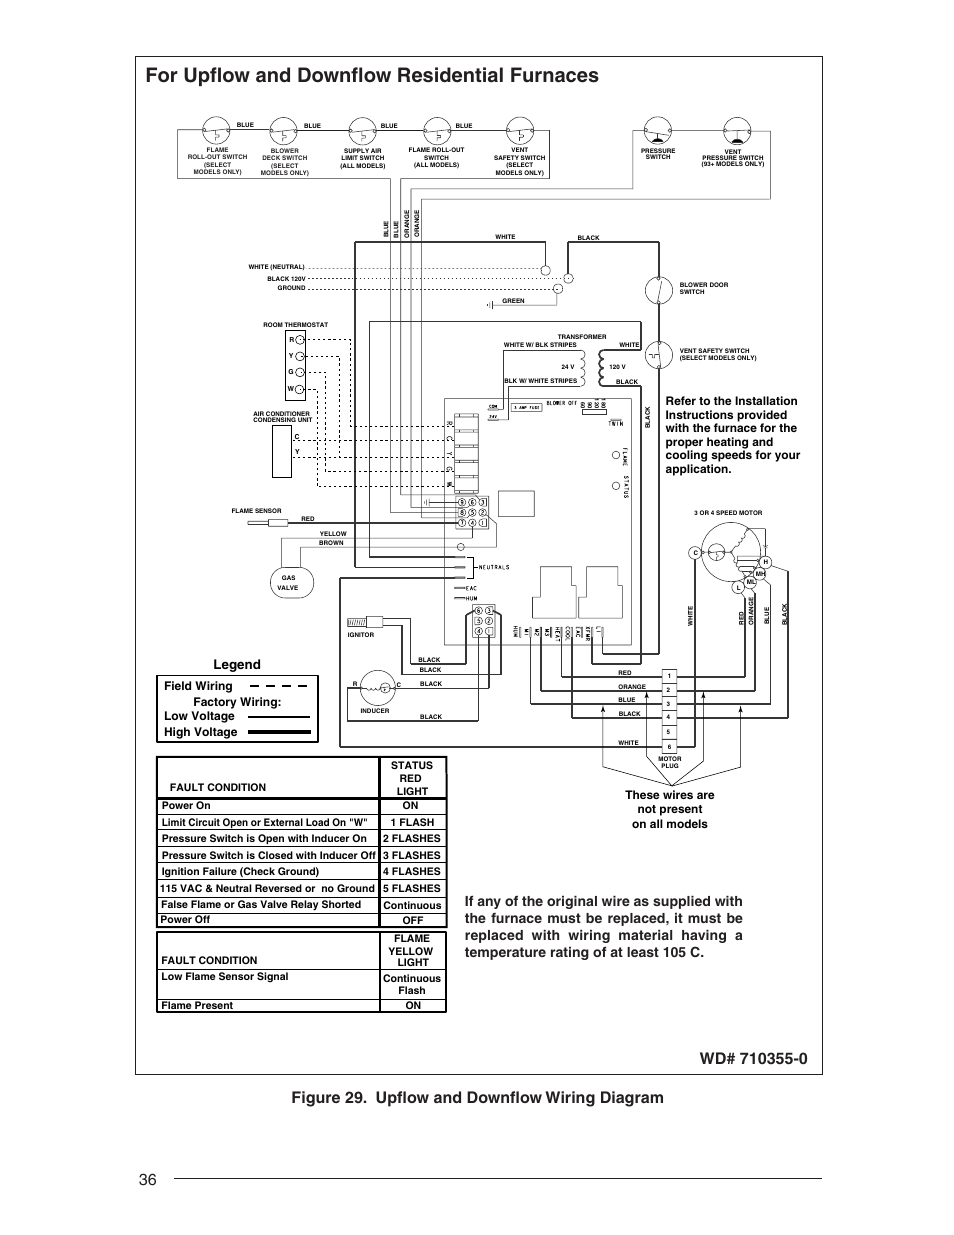 Luxaire heat pump wiring diagram heating and air